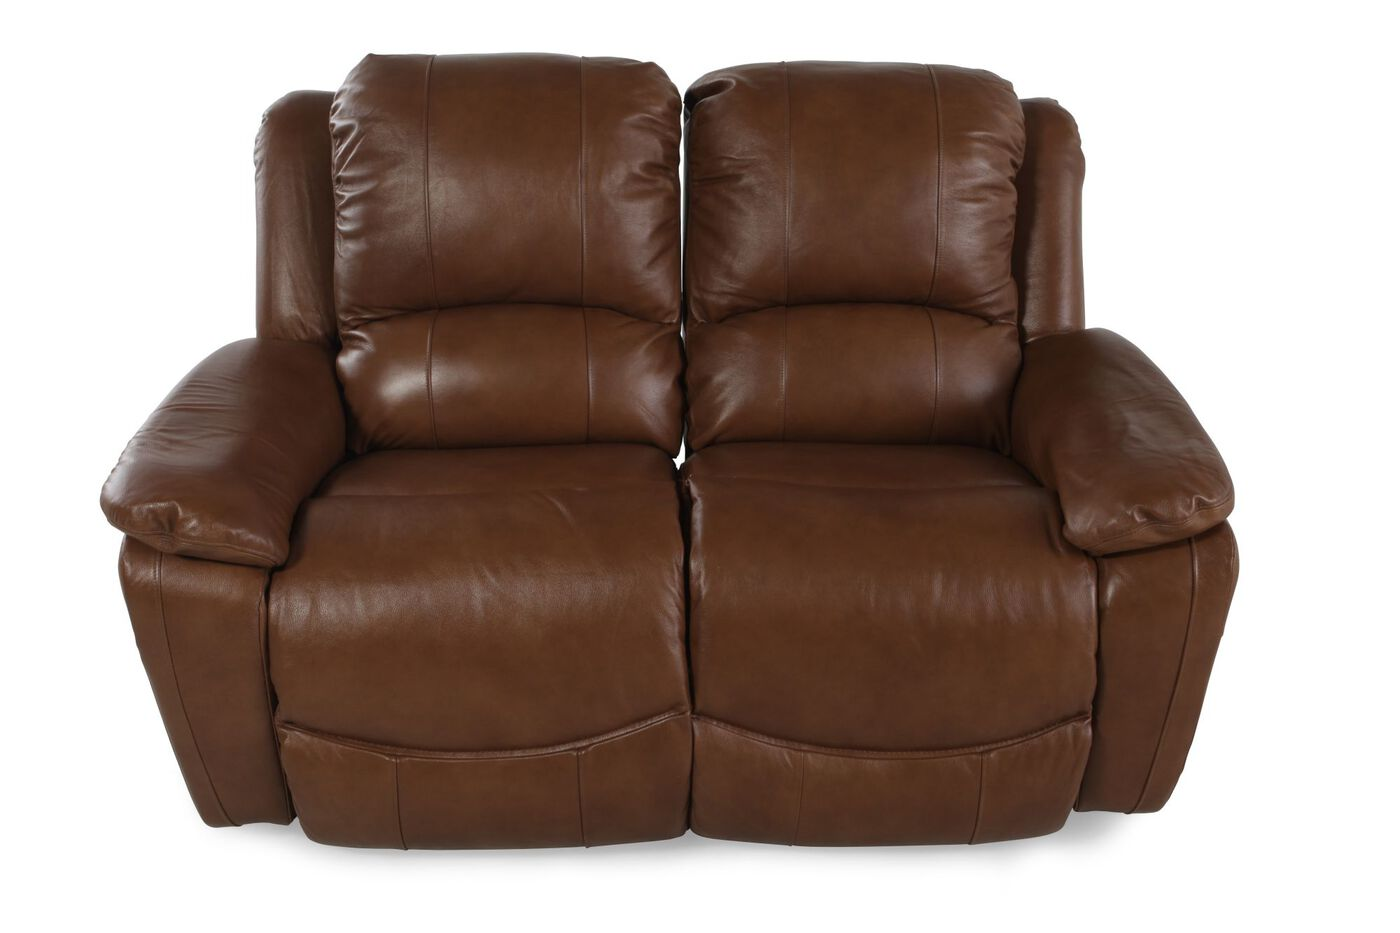 Bothwell Furniture - La-Z-Boy Comfort Studio, has been providing quality furniture to Chatham, Sarnia, London, Windsor and surrounding areas, Since Free Set-Up and Delivery.